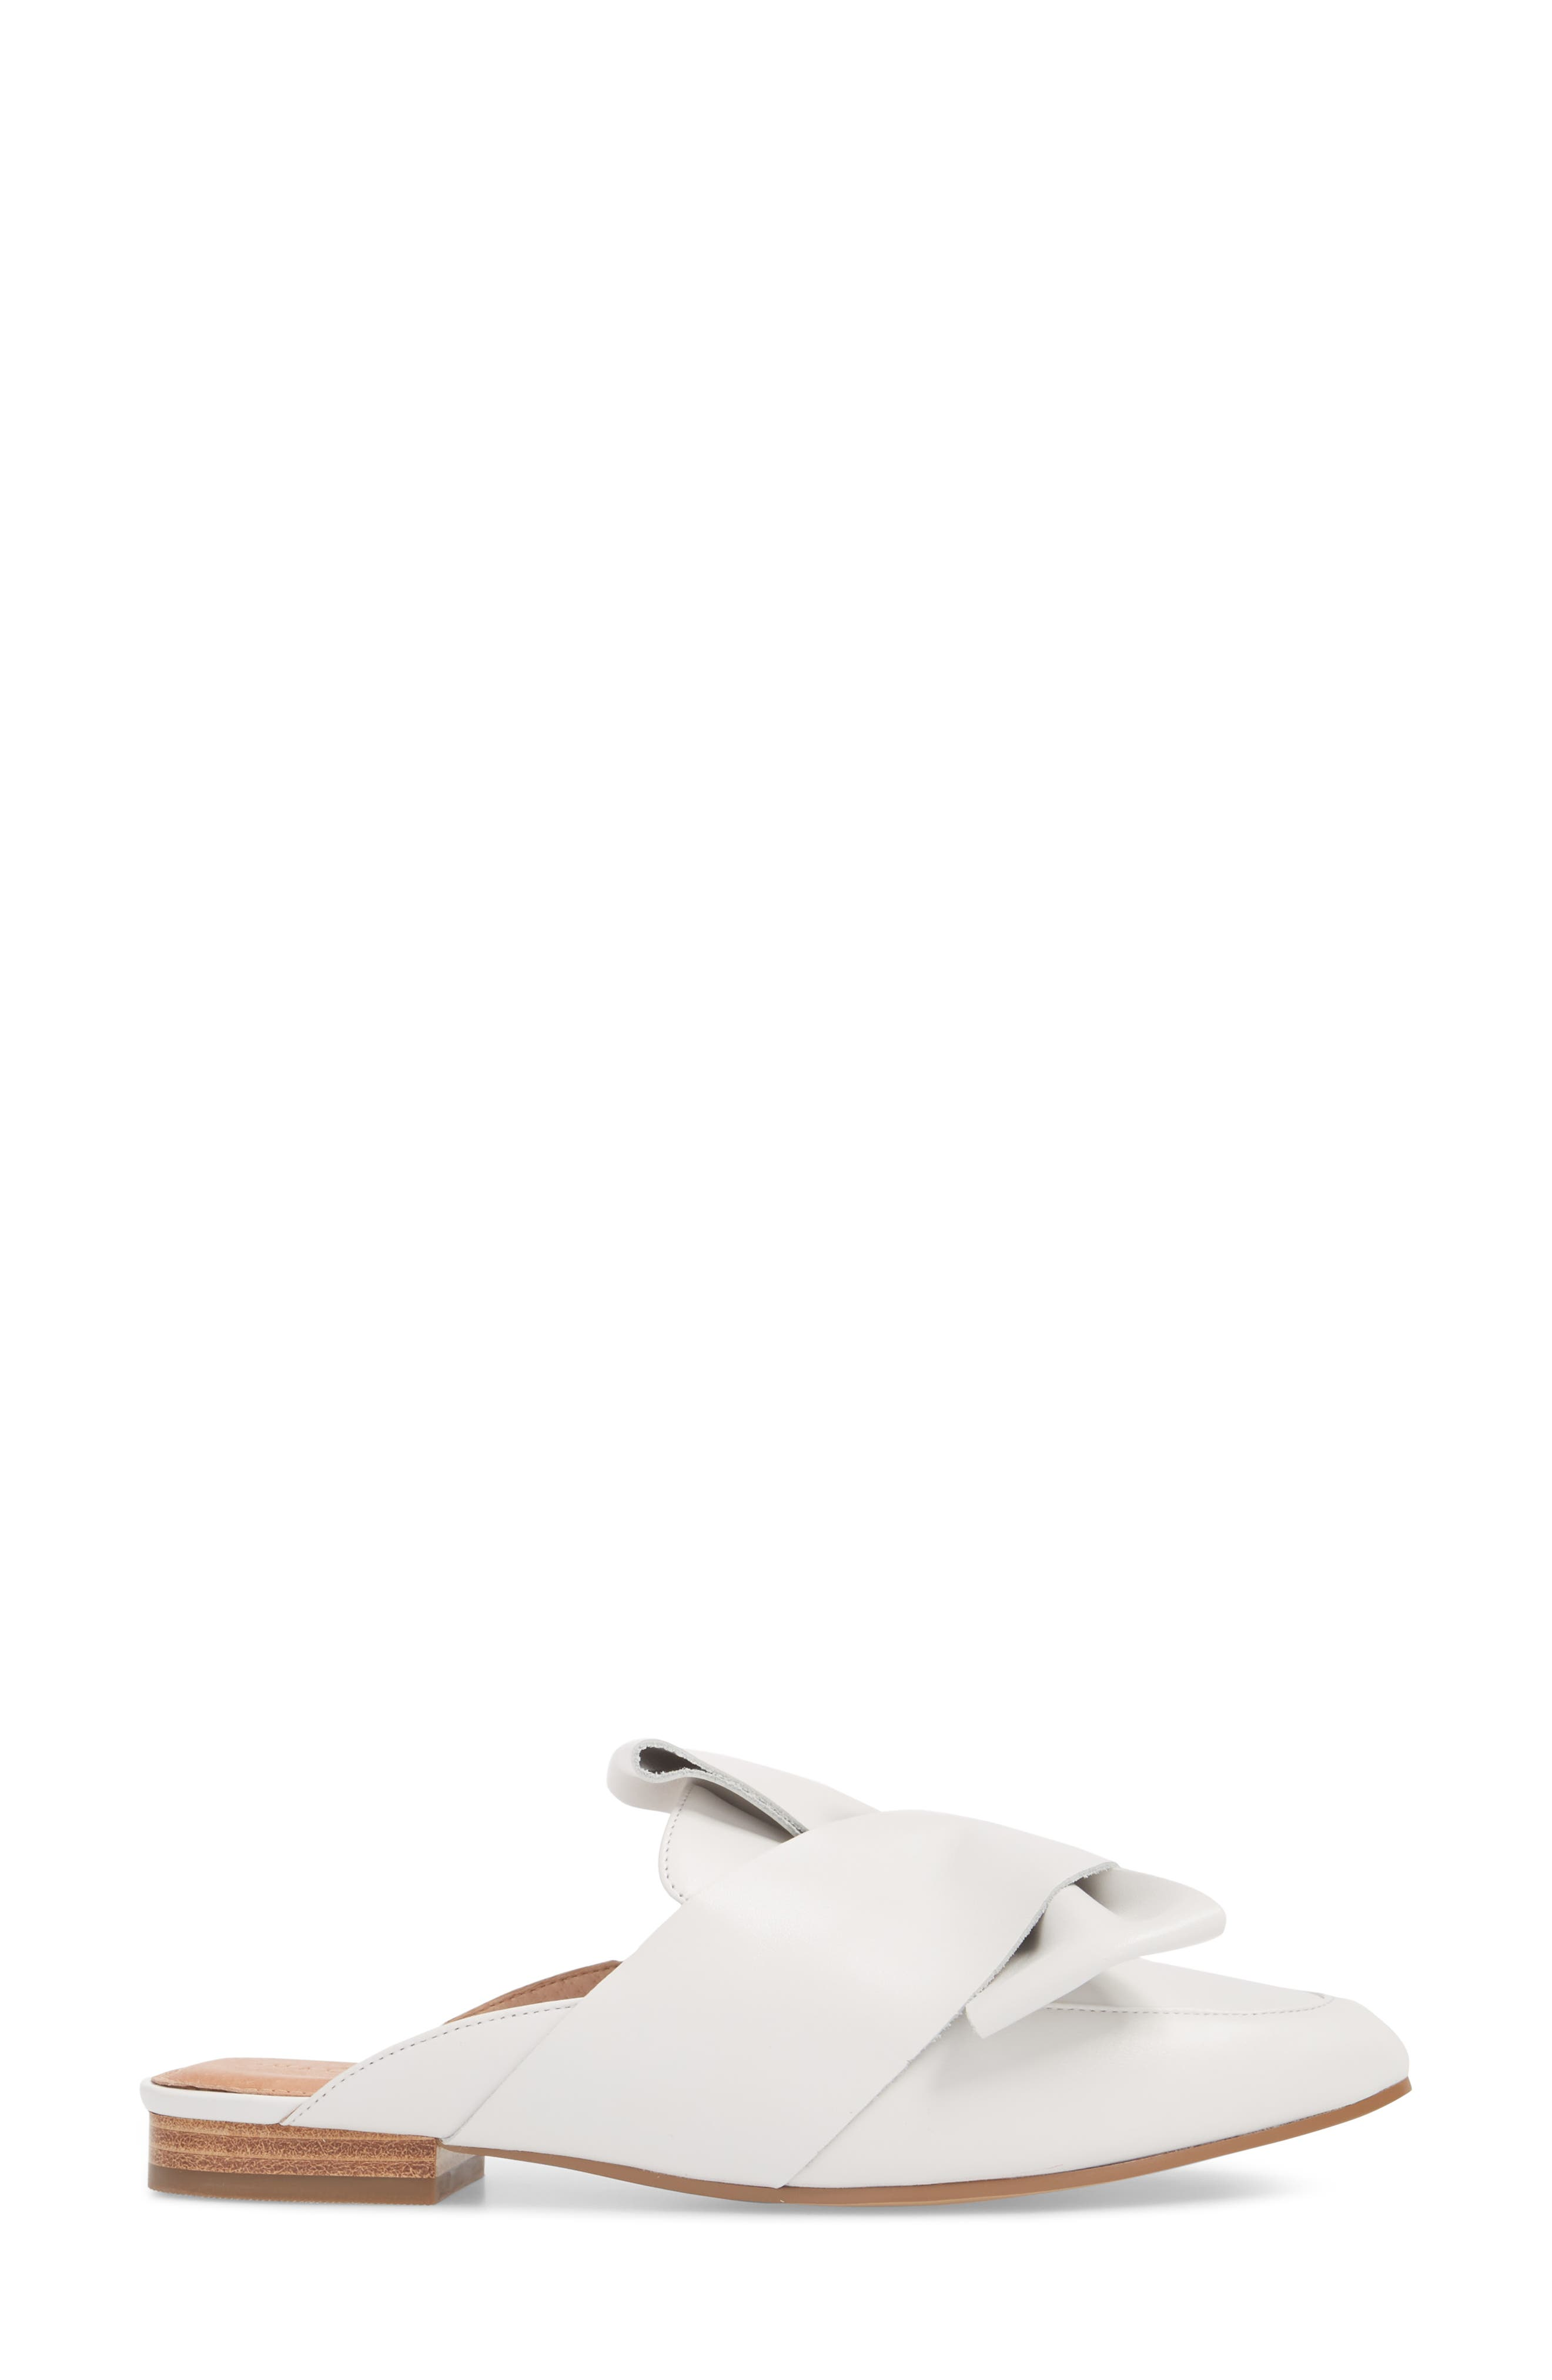 Coral Mule,                             Alternate thumbnail 3, color,                             White Leather